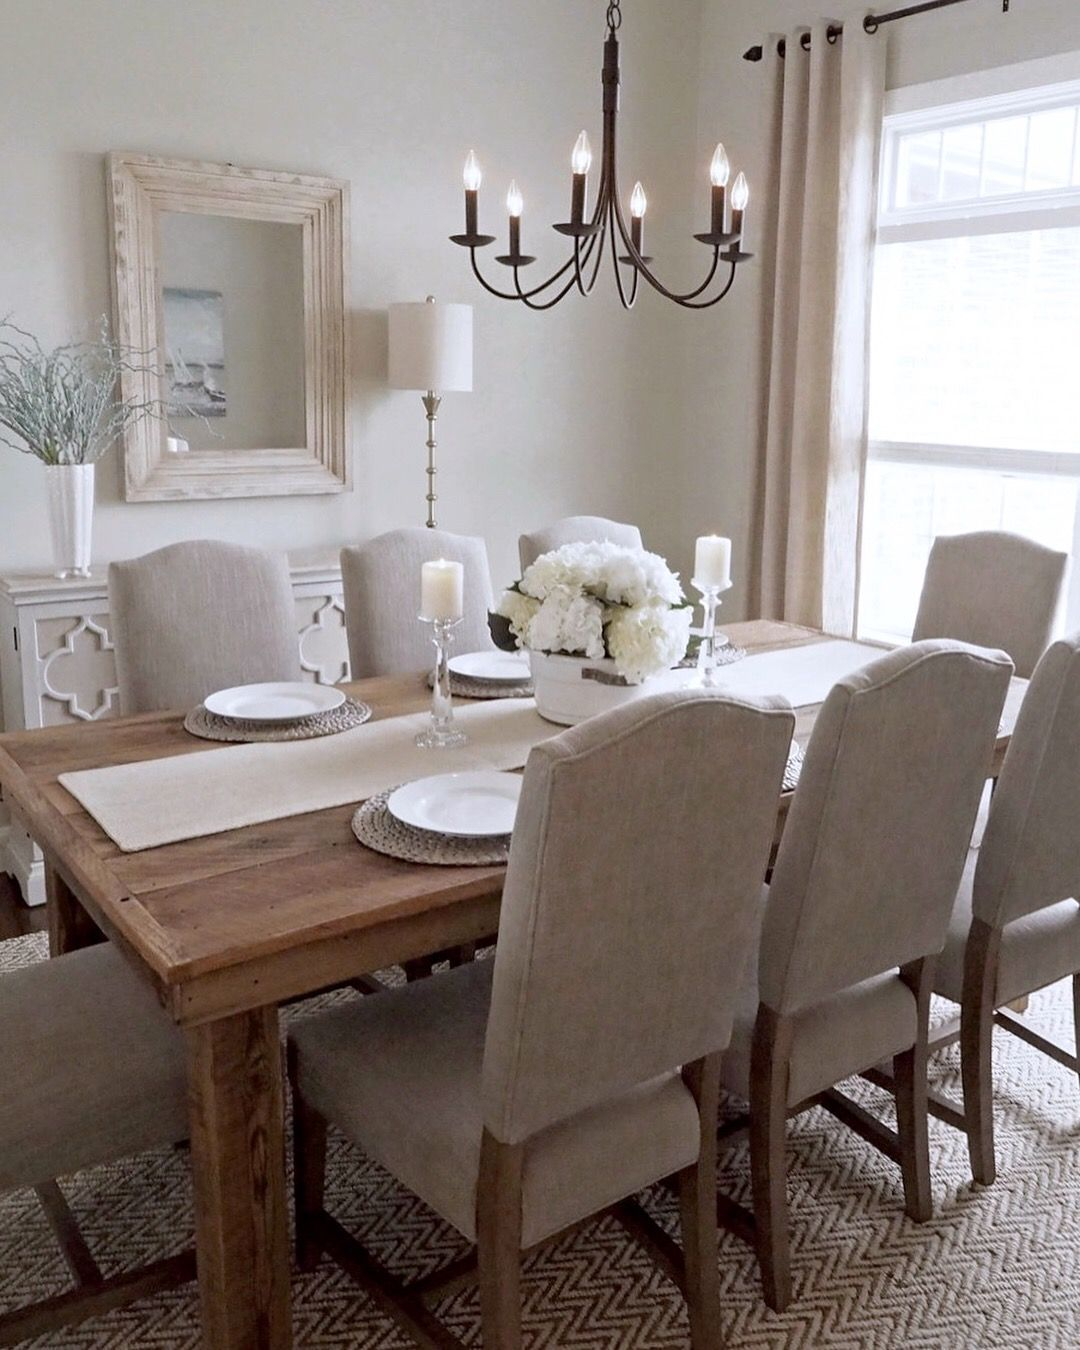 5 Best Modern White Dining Room Table Under 500 On Amazon